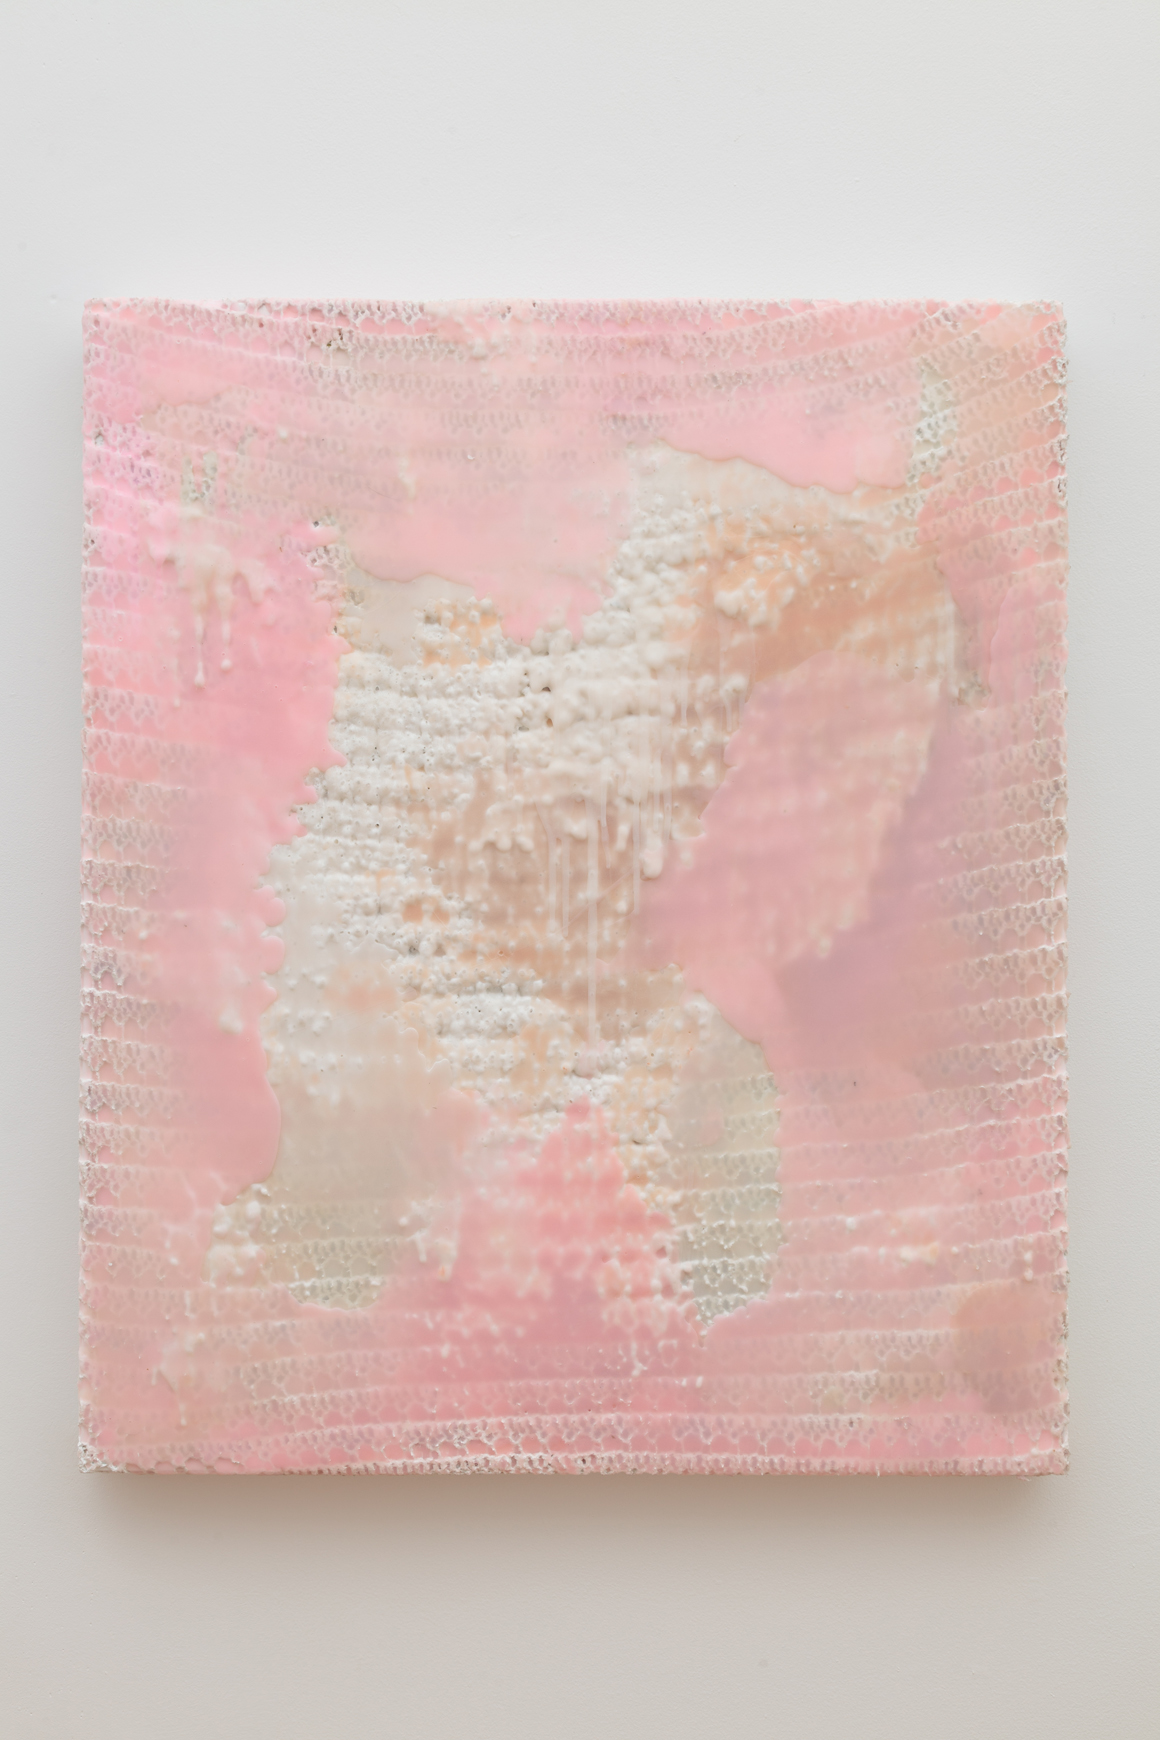 "<p><span class=""name"">Amber Cobb</span><br><em>Afterward</em><span class='media'>Blanket, acrylic, silicone</span>42.5 x 35 in (108 x 88.9 cm)<br>2015<br><a class='inquire' href='mailto:info@gildargallery.com?subject=Artwork Inquiry ACOB0047&body=I am interested in finding out more about Afterward by Amber Cobb'>Inquire</a></p>"